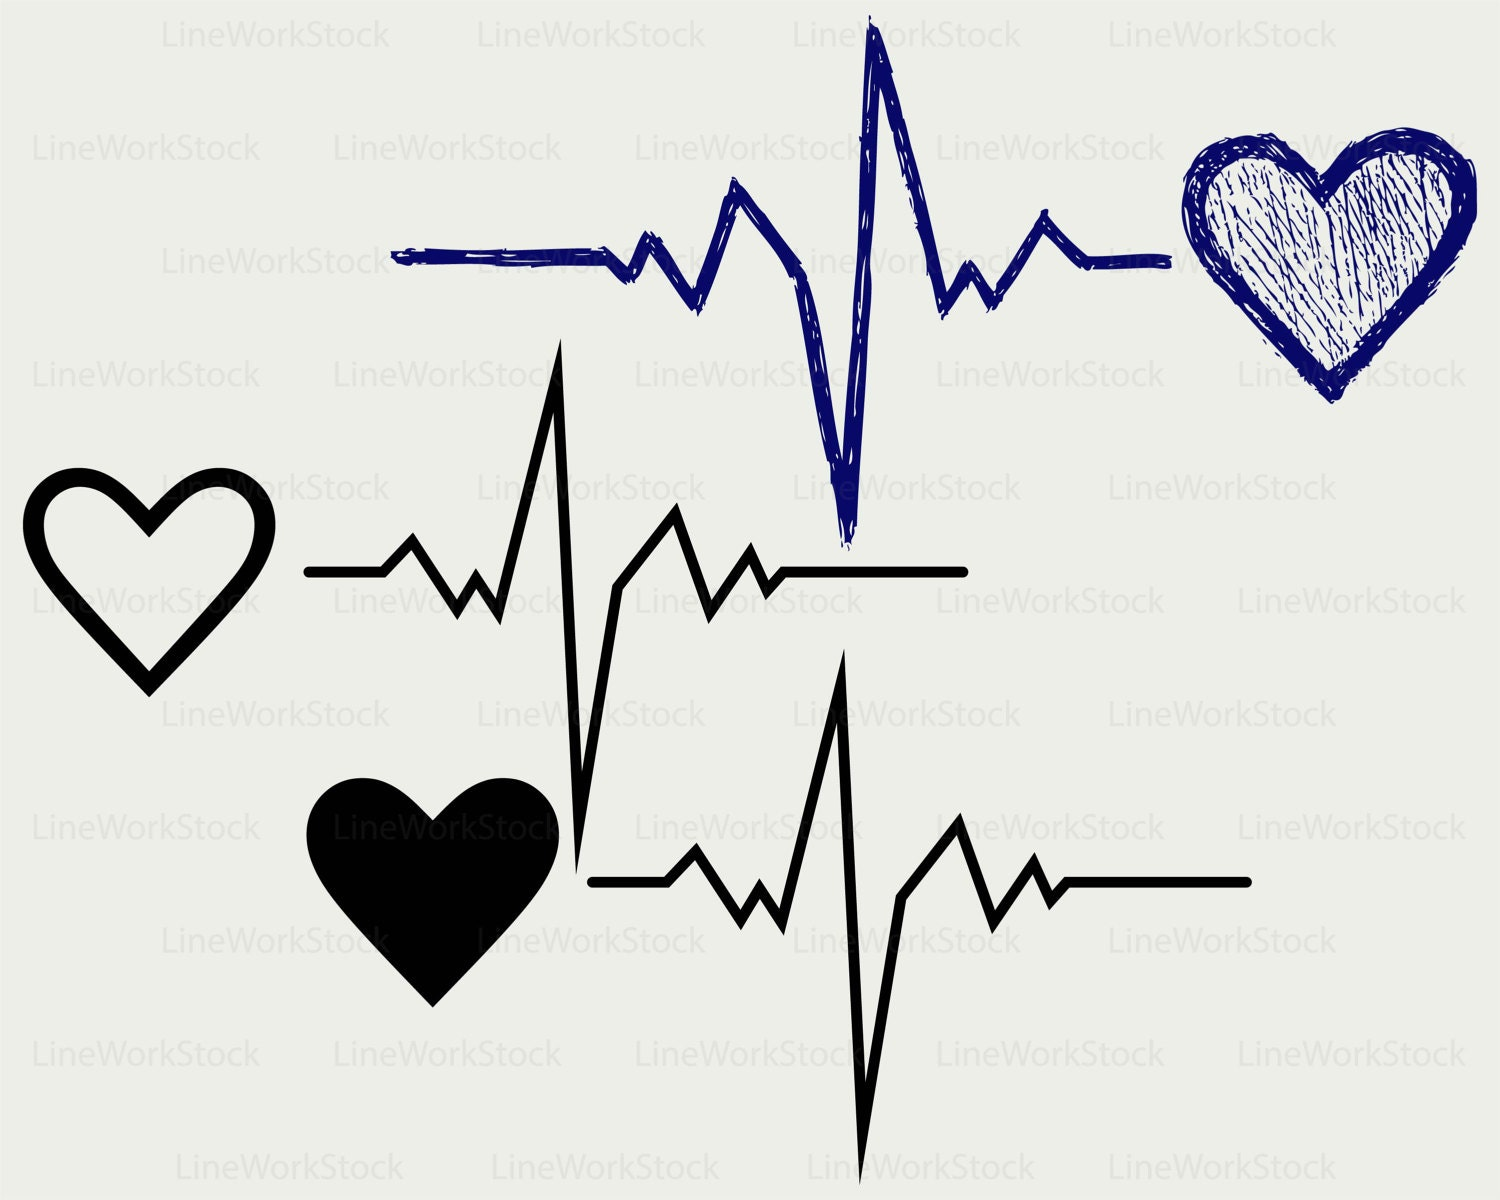 Heartbeat svg heartbeat clipart heartbeat svg heartbeat for Heartbeat design